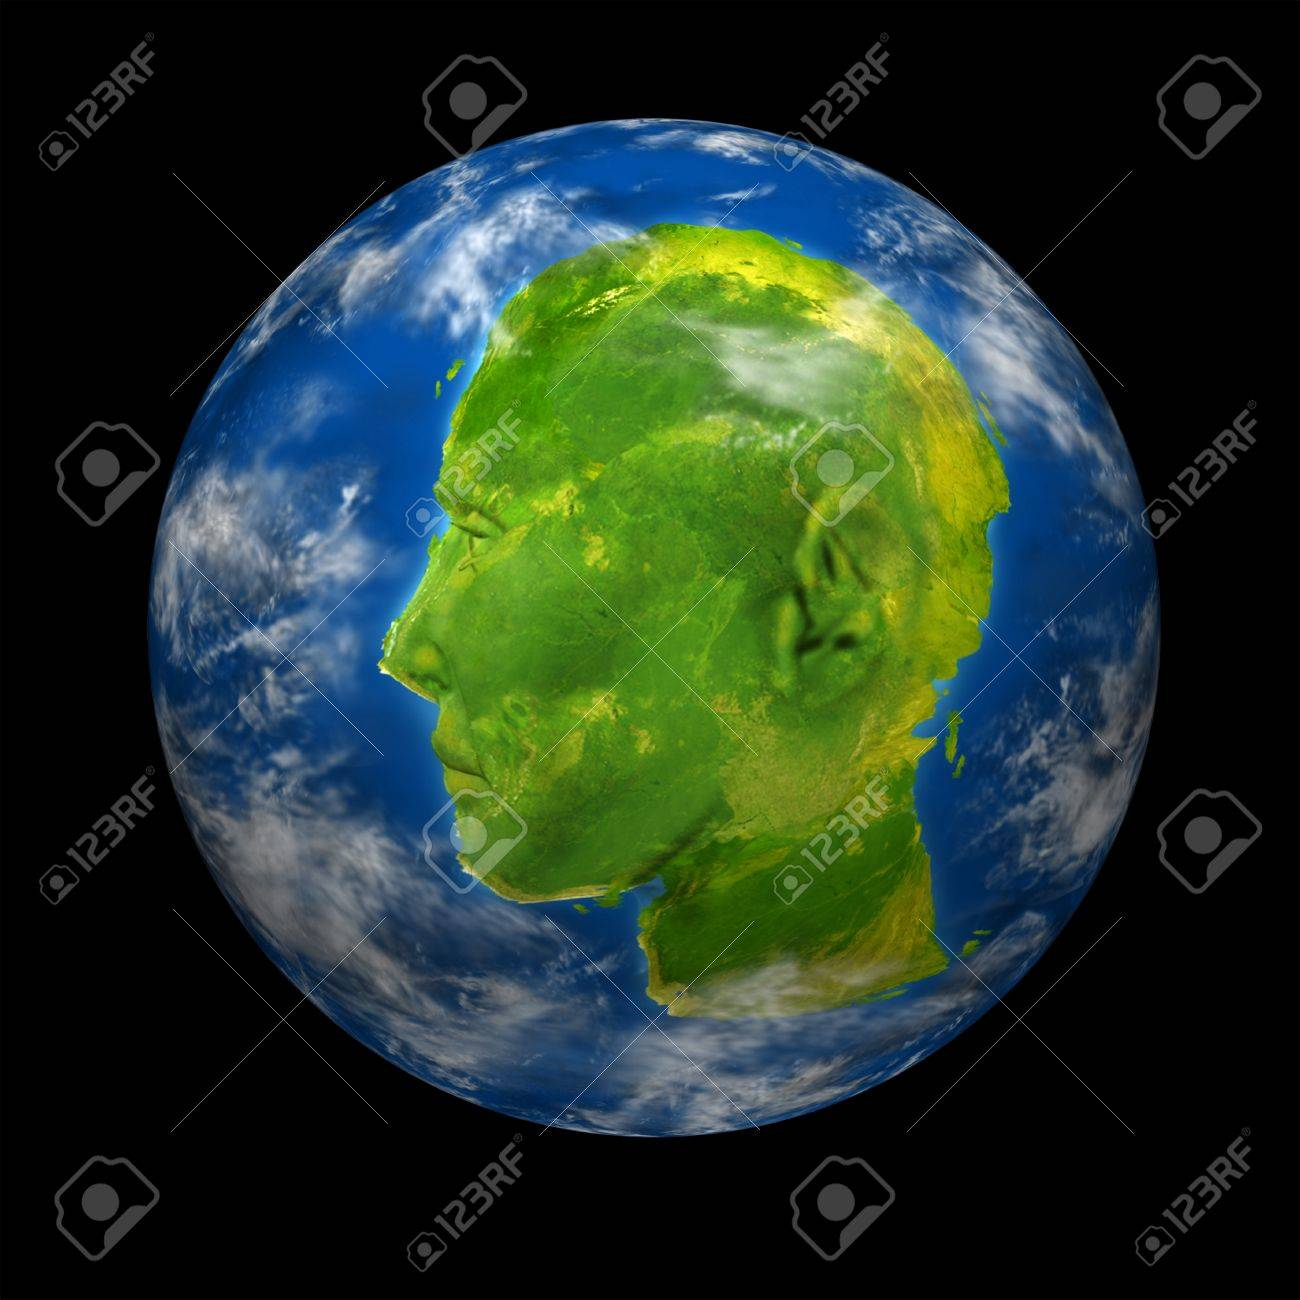 Interactive global communications leader concept with a planet interactive global communications leader concept with a planet earth with a continent map shaped as a gumiabroncs Image collections